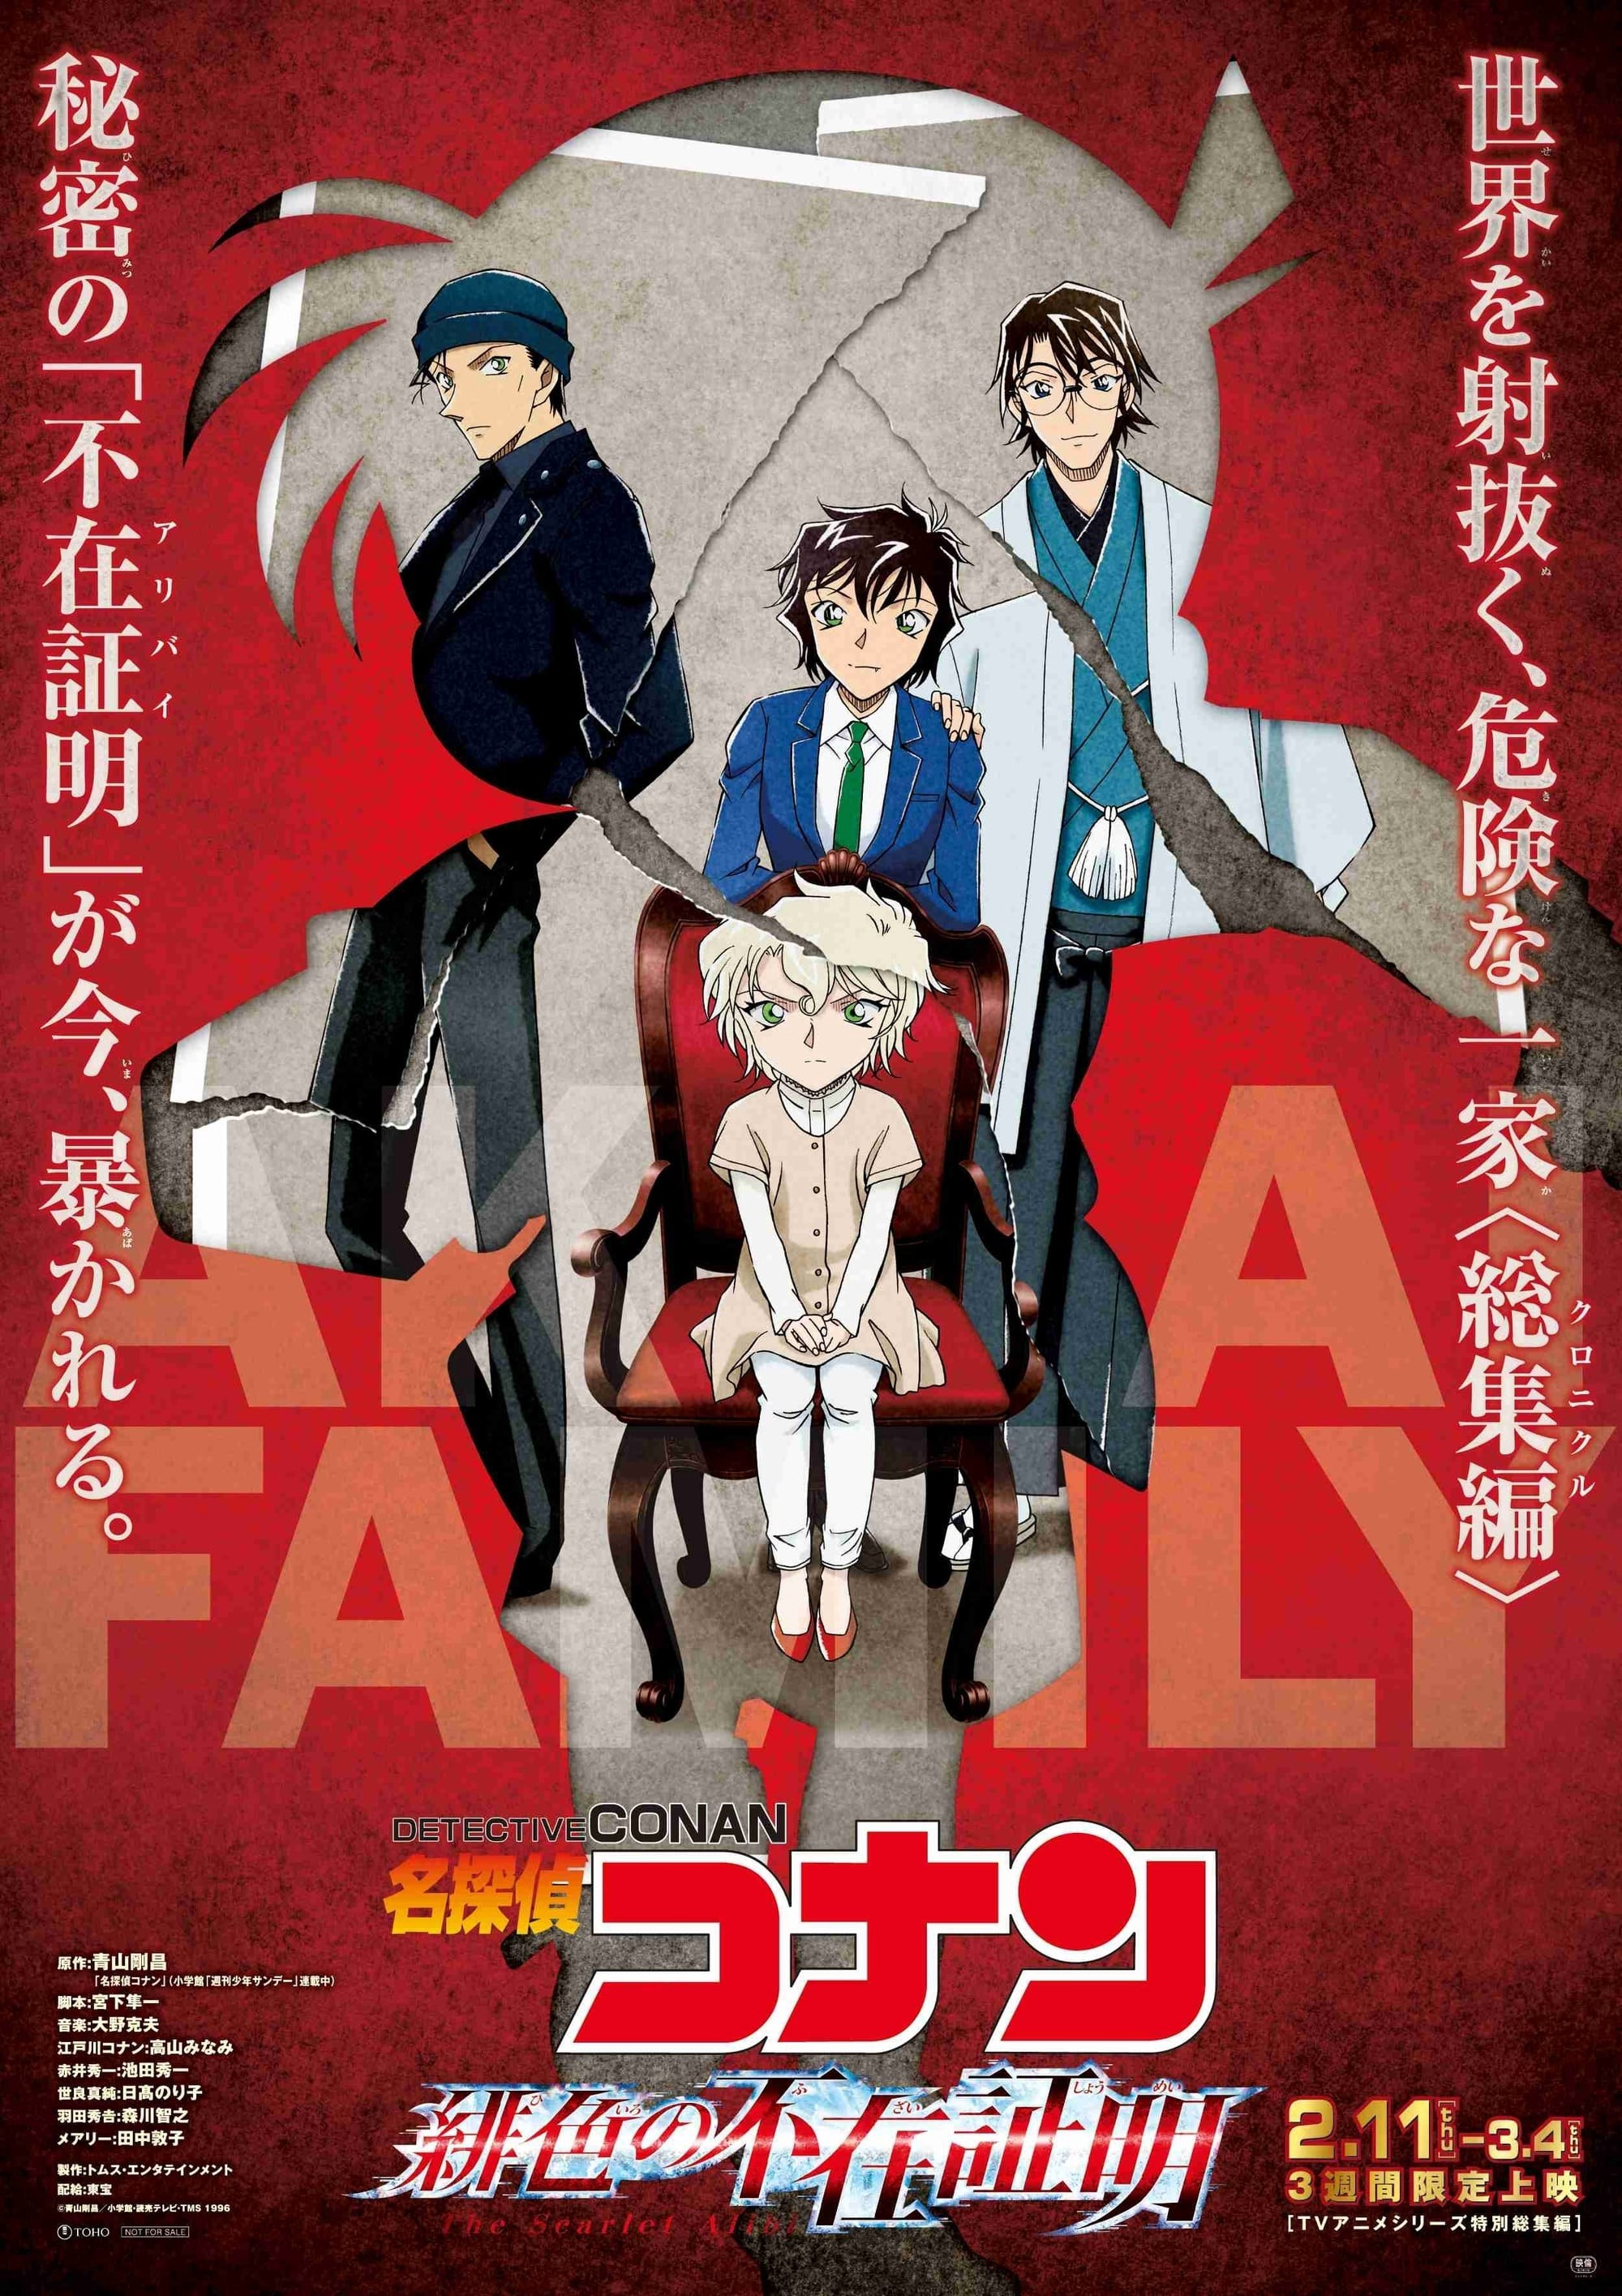 Download Detective Conan The Movie : download, detective, conan, movie, Detective, Conan:, Scarlet, Alibi, Movie, Dubbed, Lviand, STREAMING, (ONLINE), Medium